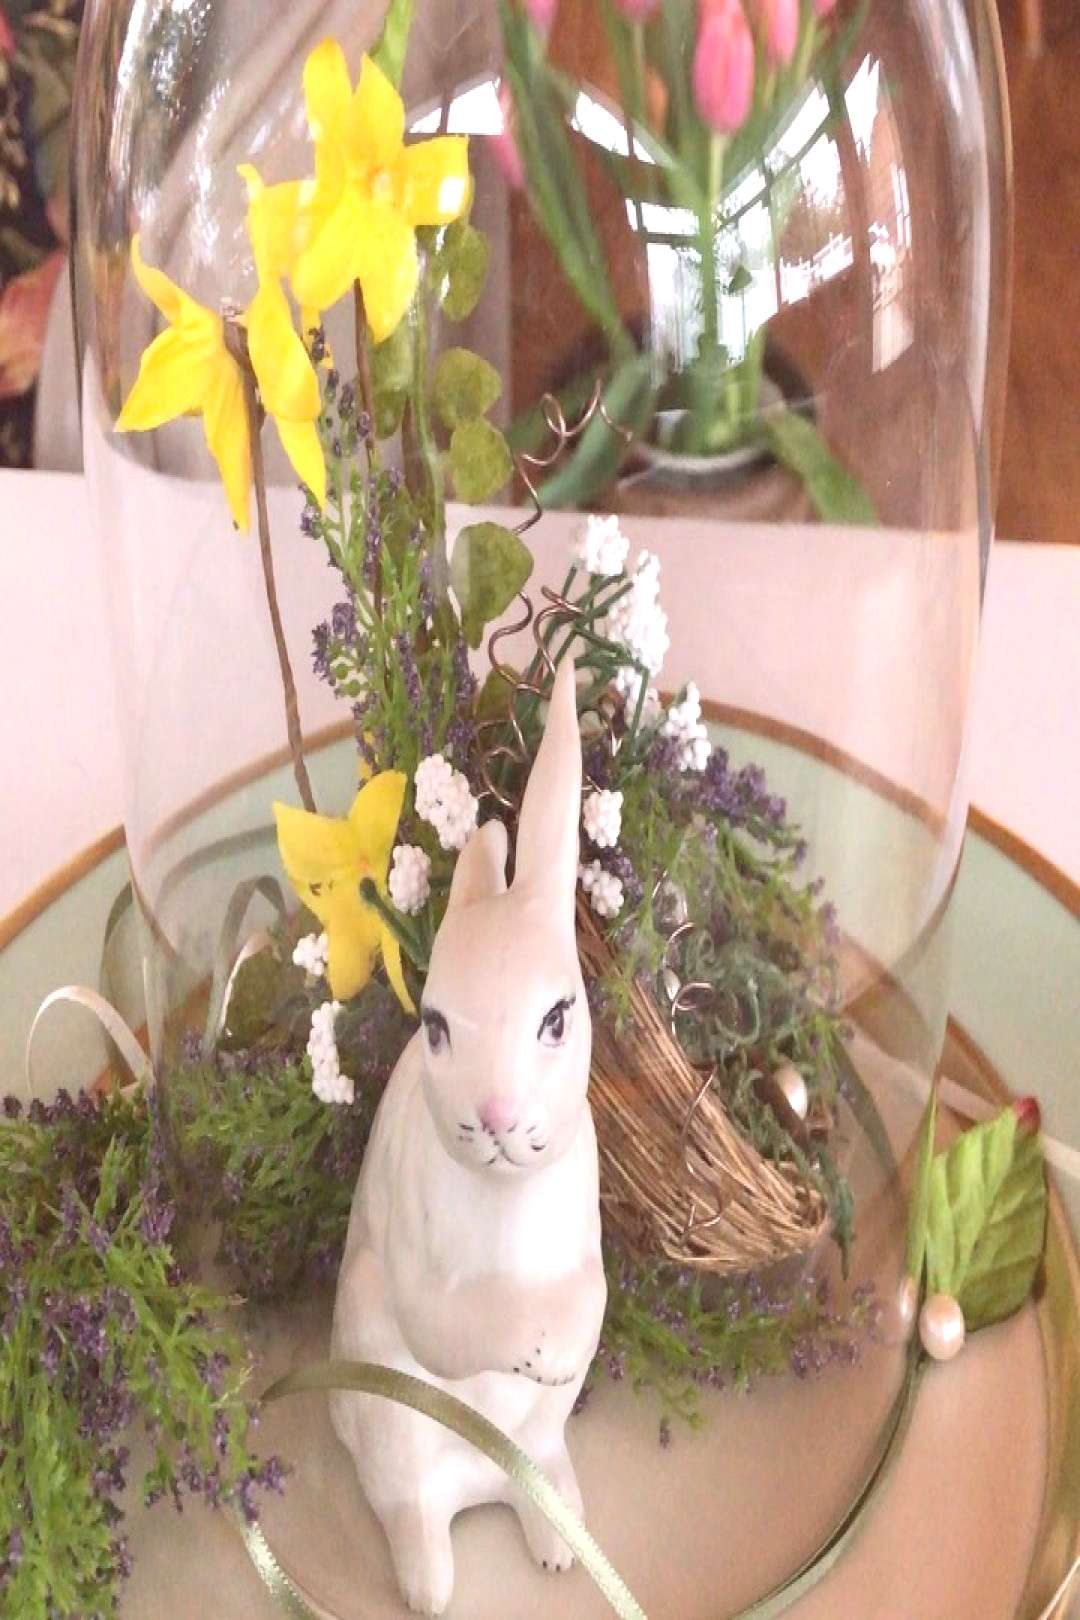 BUNNY FUN .... I spent some time in my hideaway workshop today pu